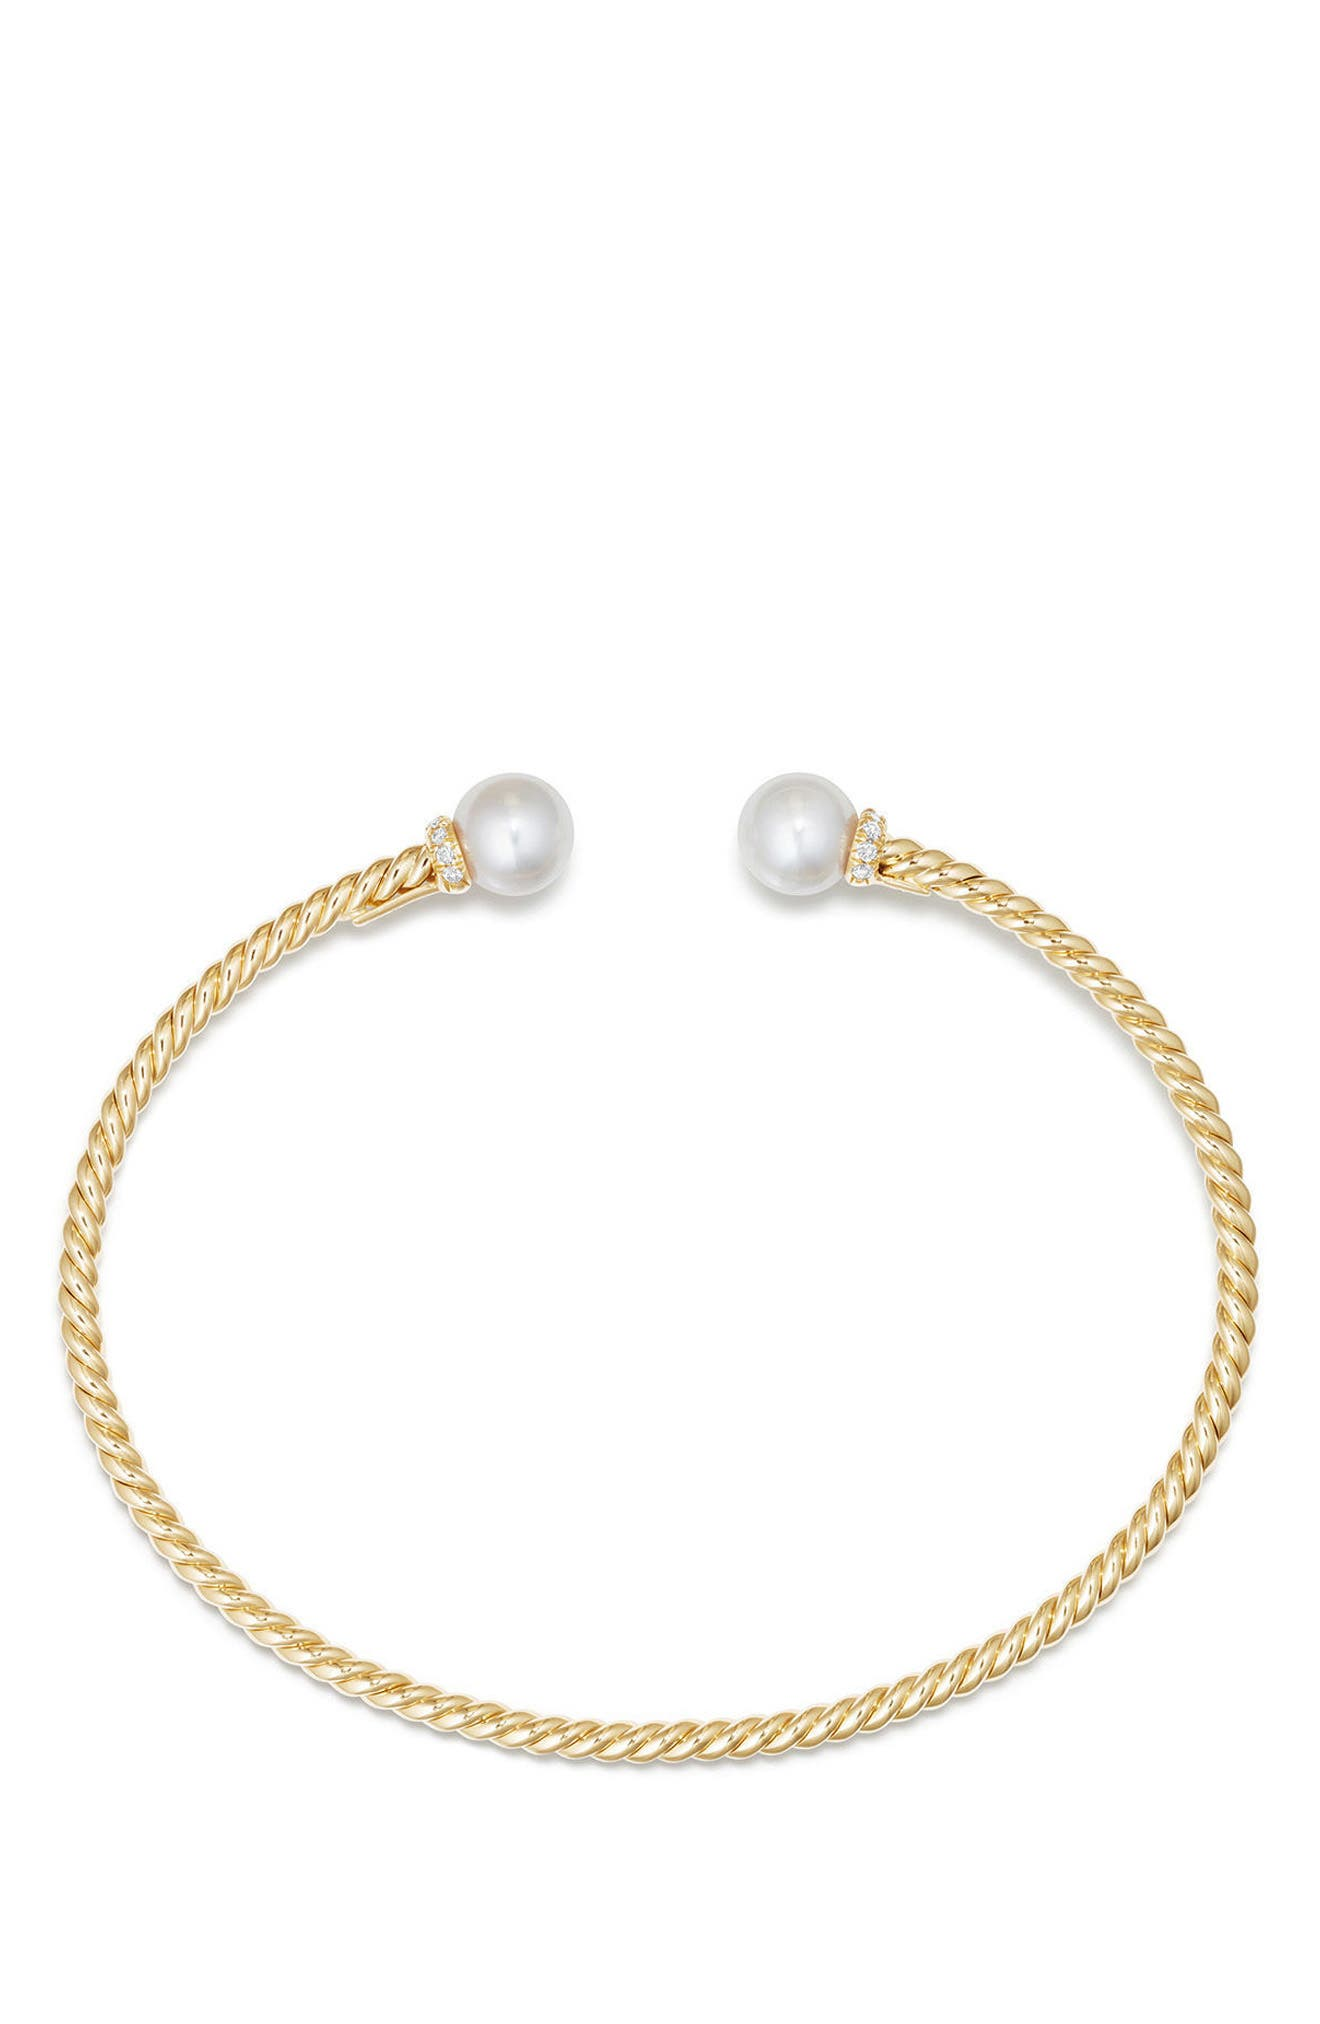 Solari Pearl Bracelet with Diamonds in 18K Gold,                             Alternate thumbnail 2, color,                             Yellow Gold/ Diamond